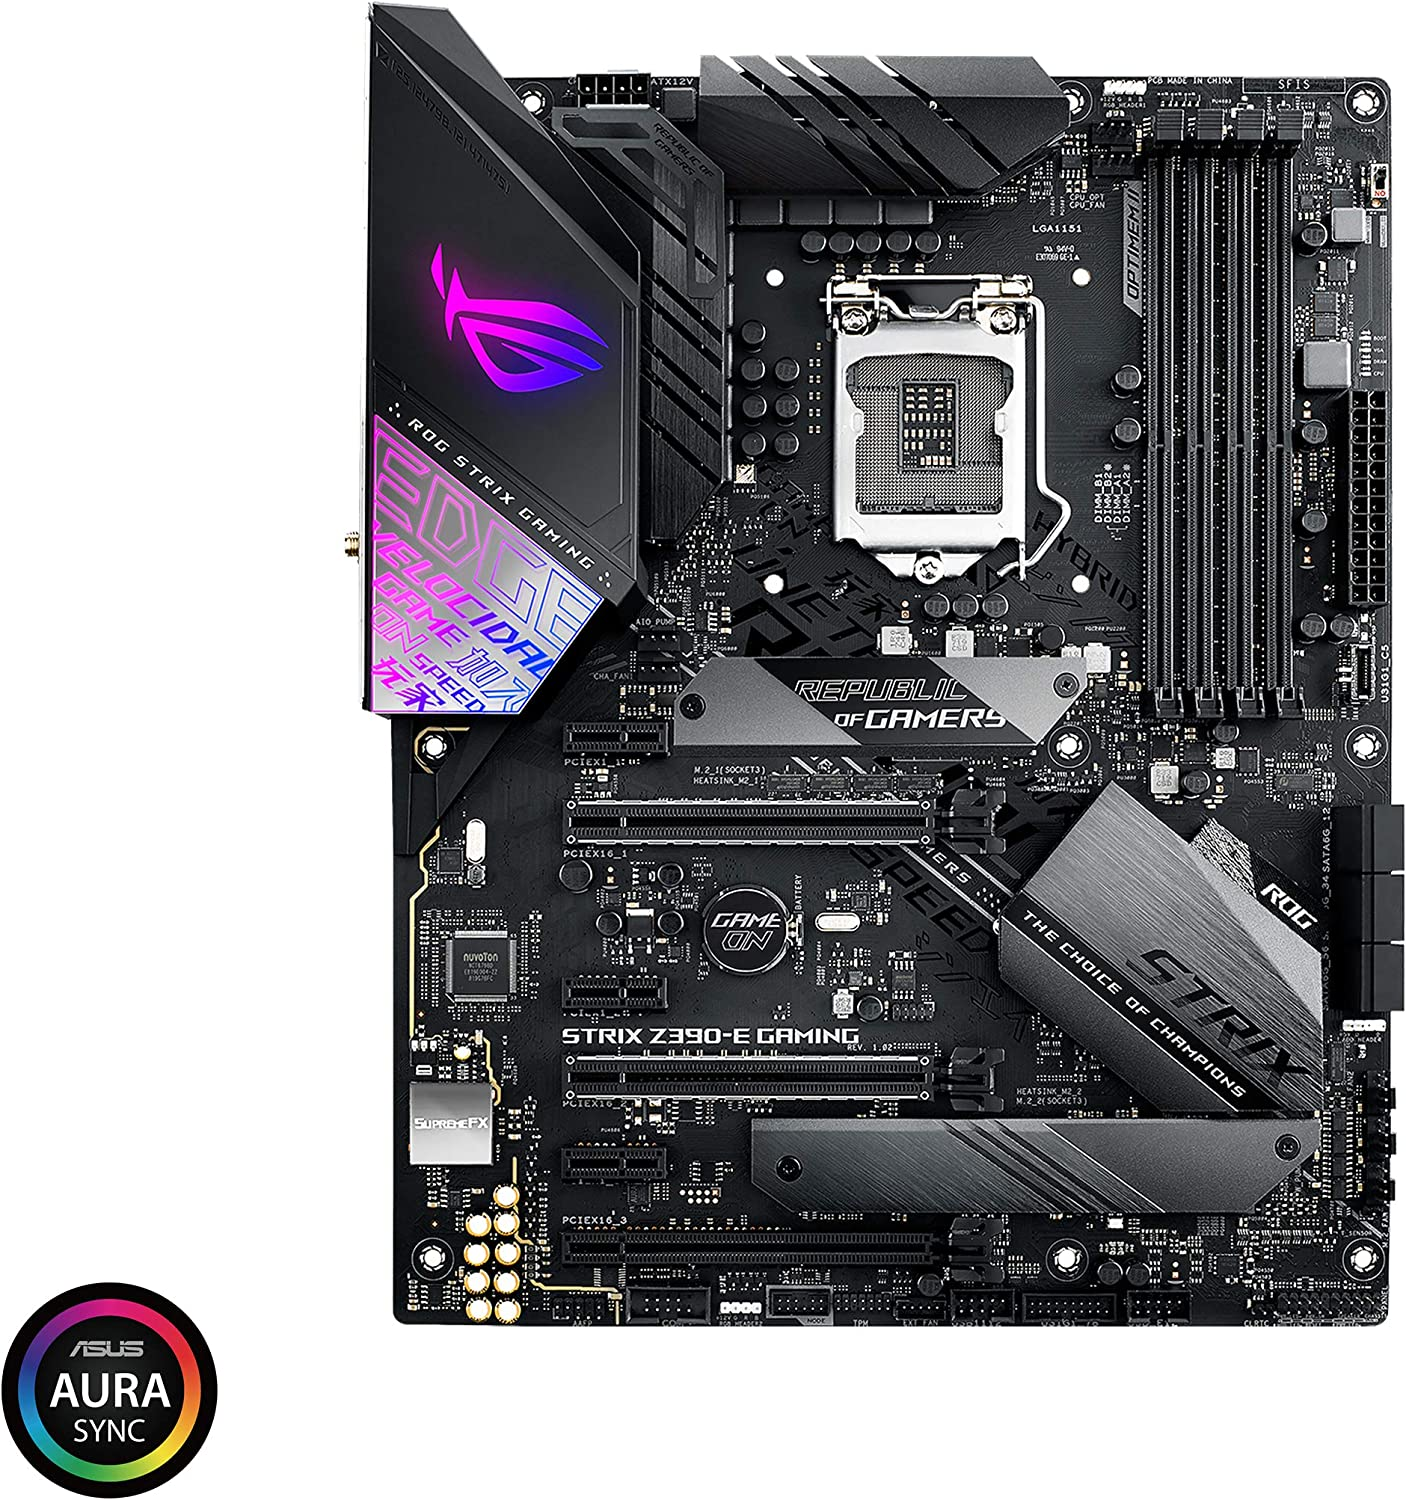 Asus ROG Strix Z390-E Gaming Motherboard LGA1151 (Intel 8th 9th Gen) ATX DDR4 DP HDMI M.2 USB 3.1 Gen2 802.11AC Wi-Fi